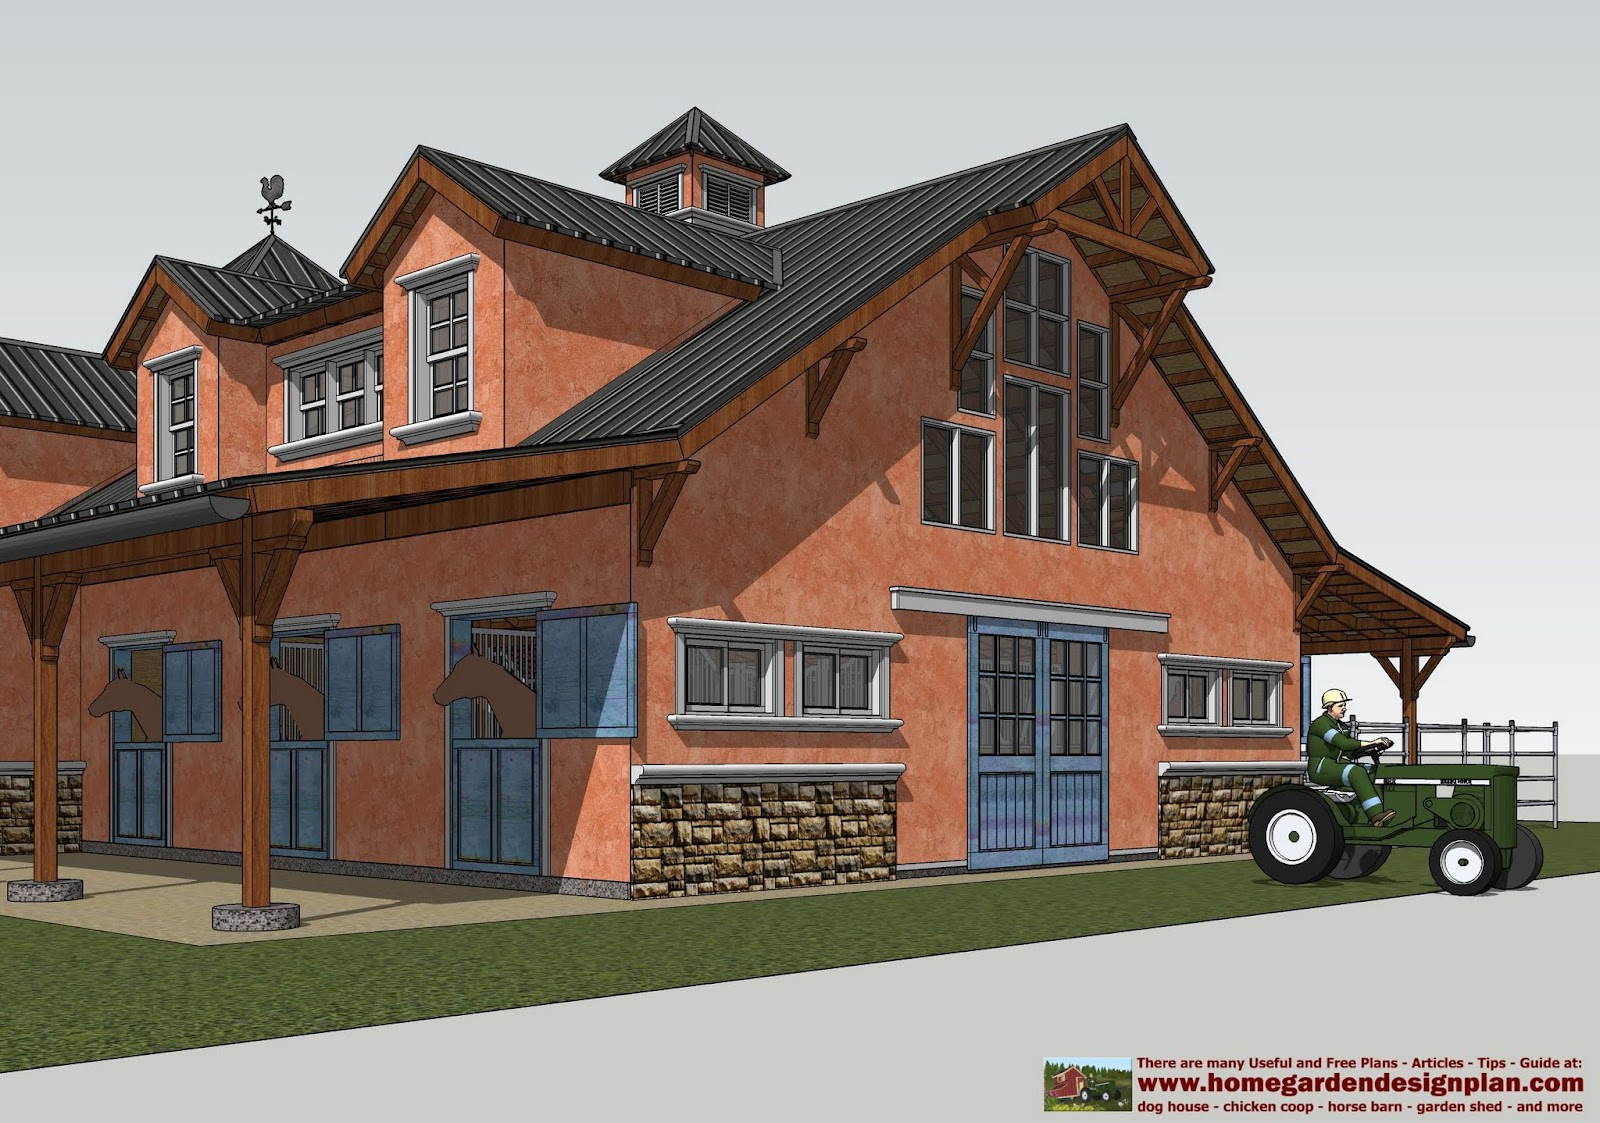 Mina hb100 horse barn plans horse barn design for Horse barn designs